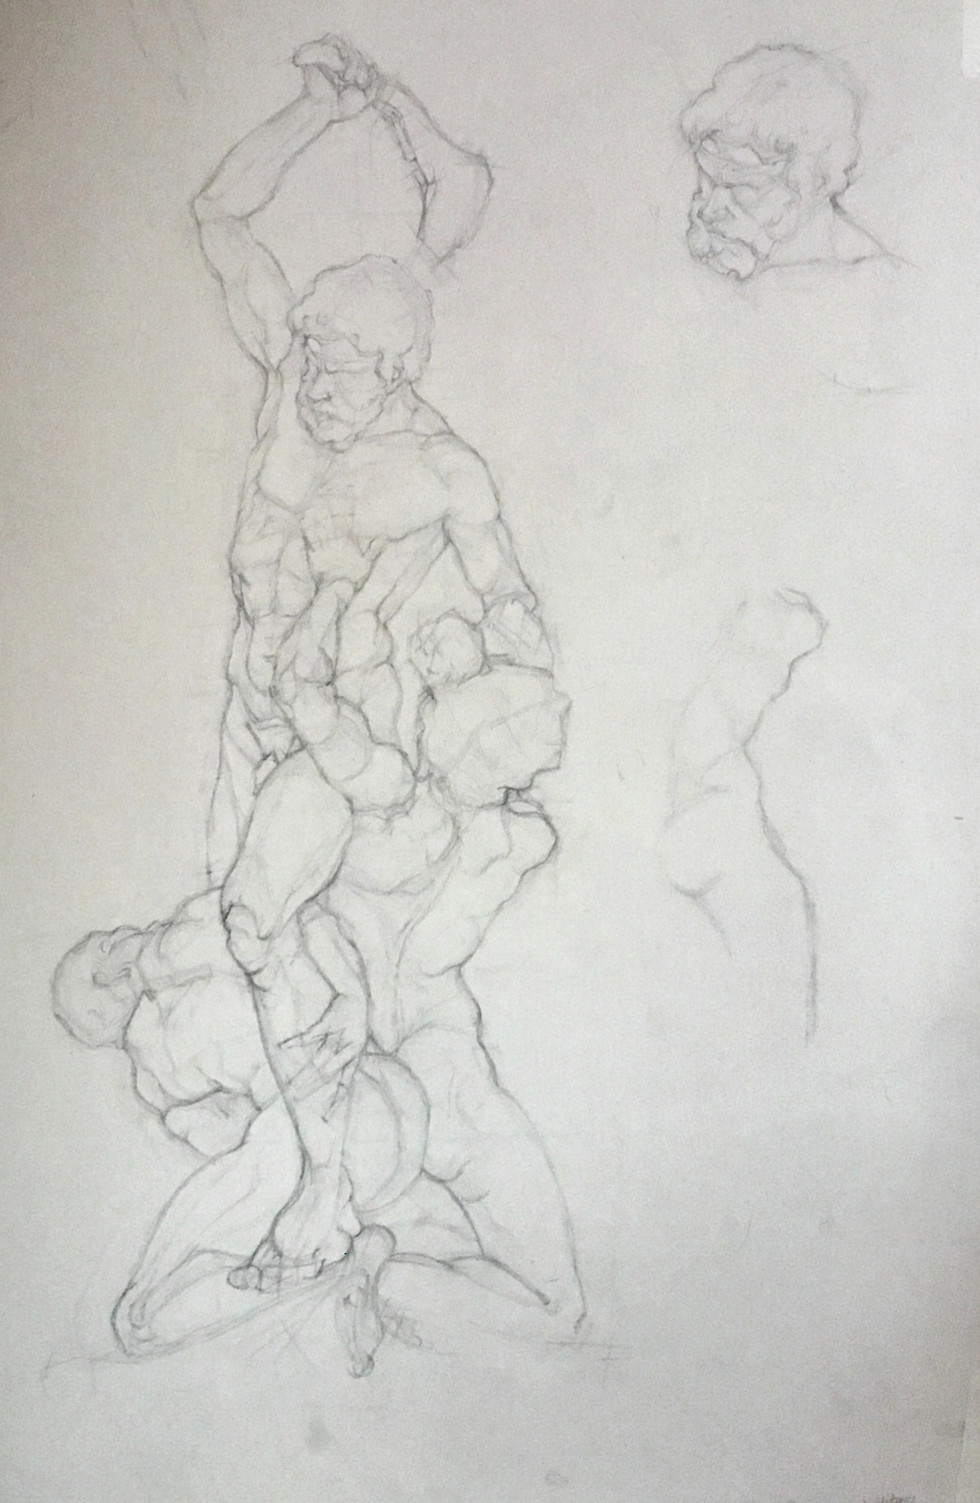 Pencil sketch of 'Samson and the Philistines' by Foggini